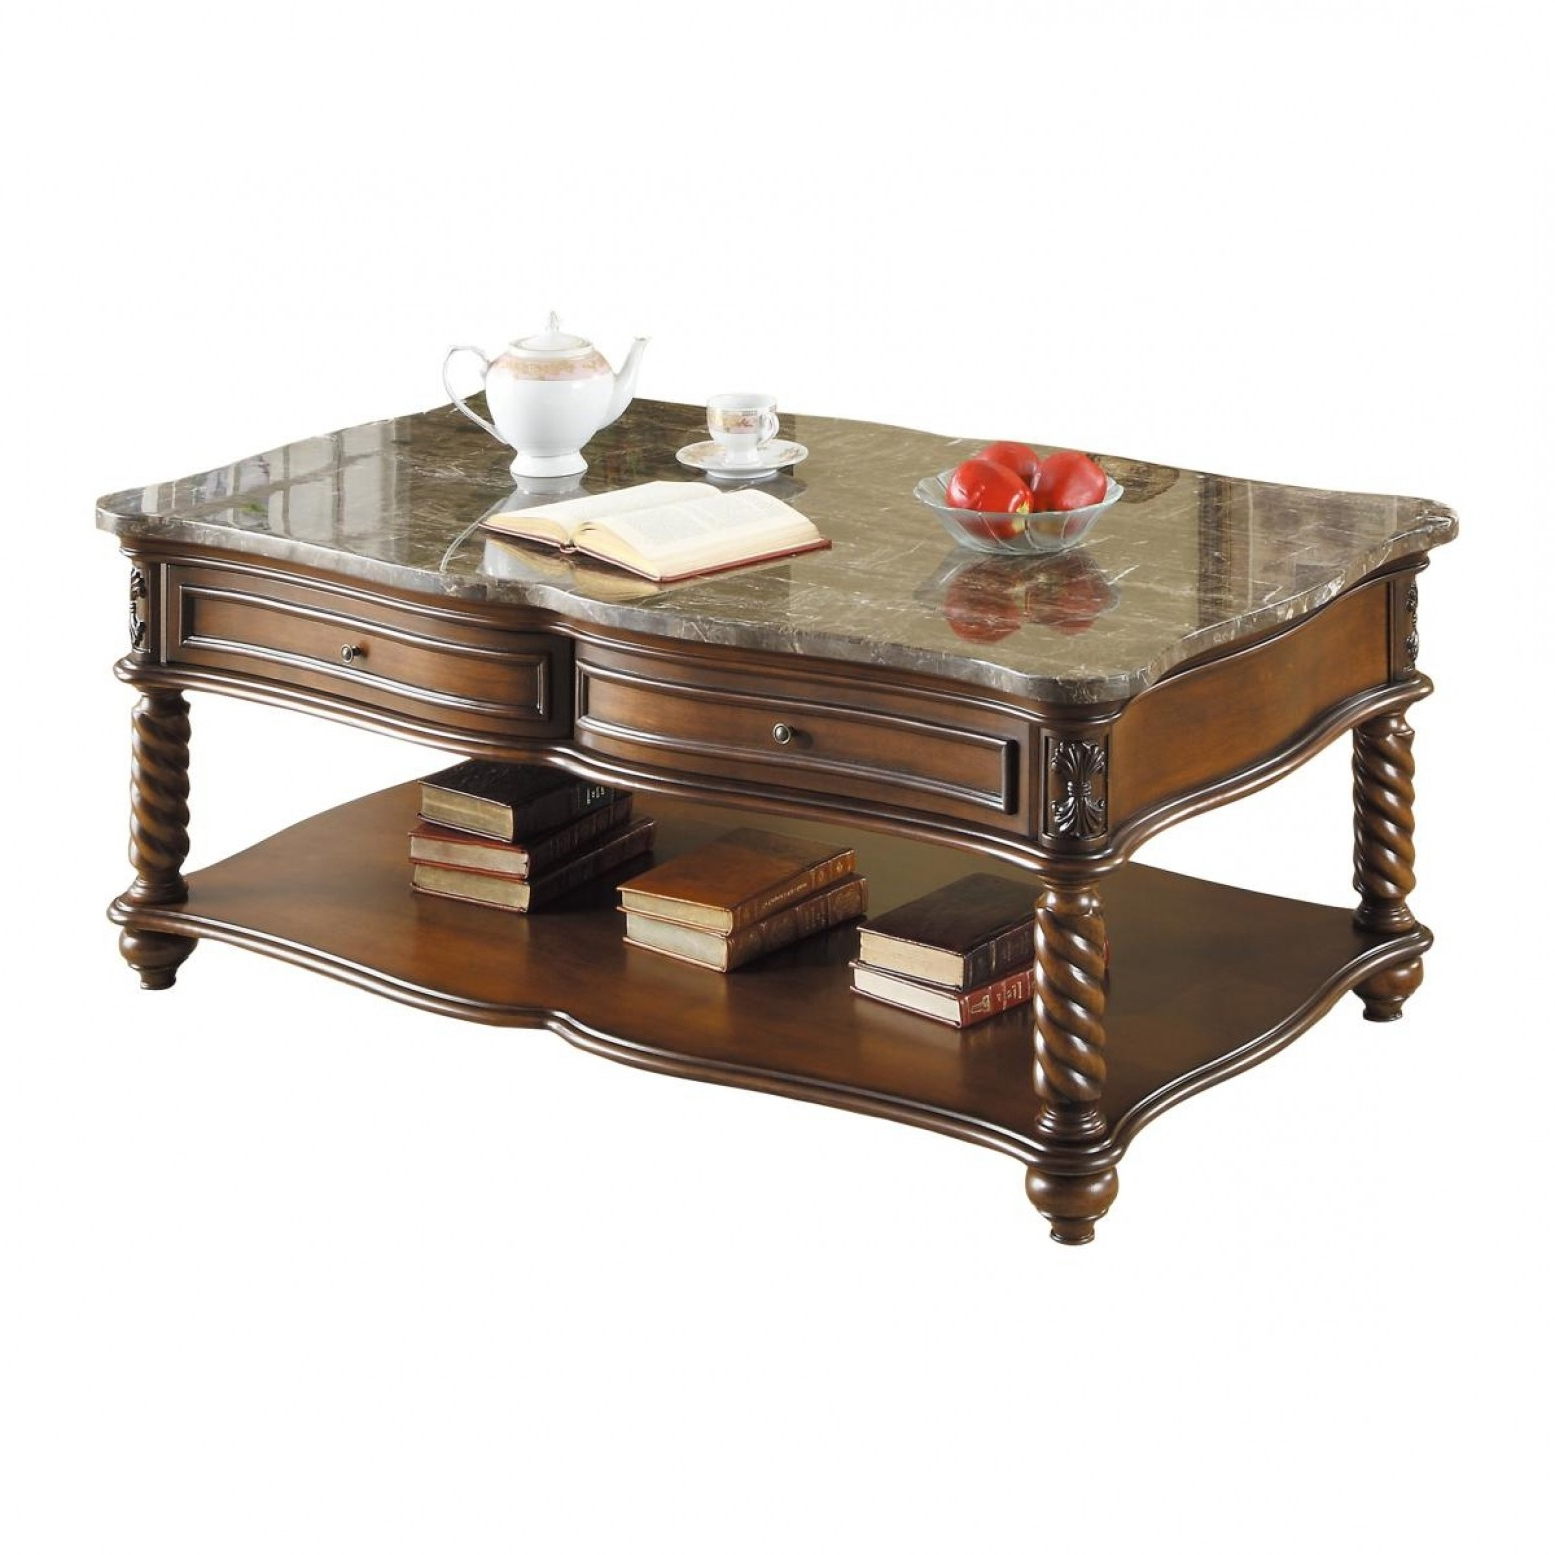 Lockwood Marble Coffee Table Pertaining To Most Recently Released Lockwood Rectangle Coffee Tables (View 14 of 20)